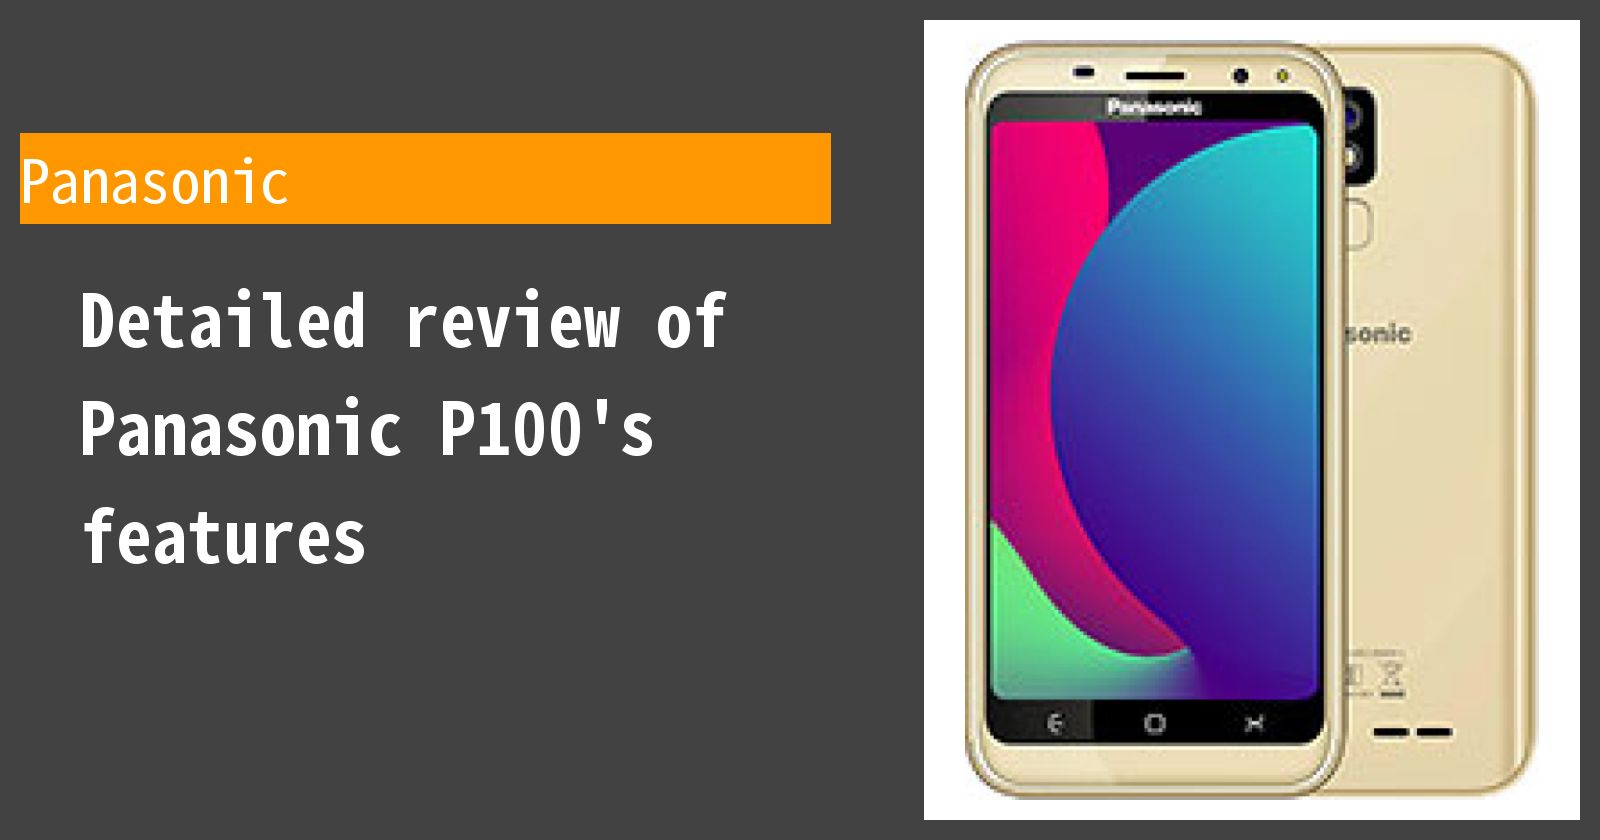 Detailed review of Panasonic P100's features